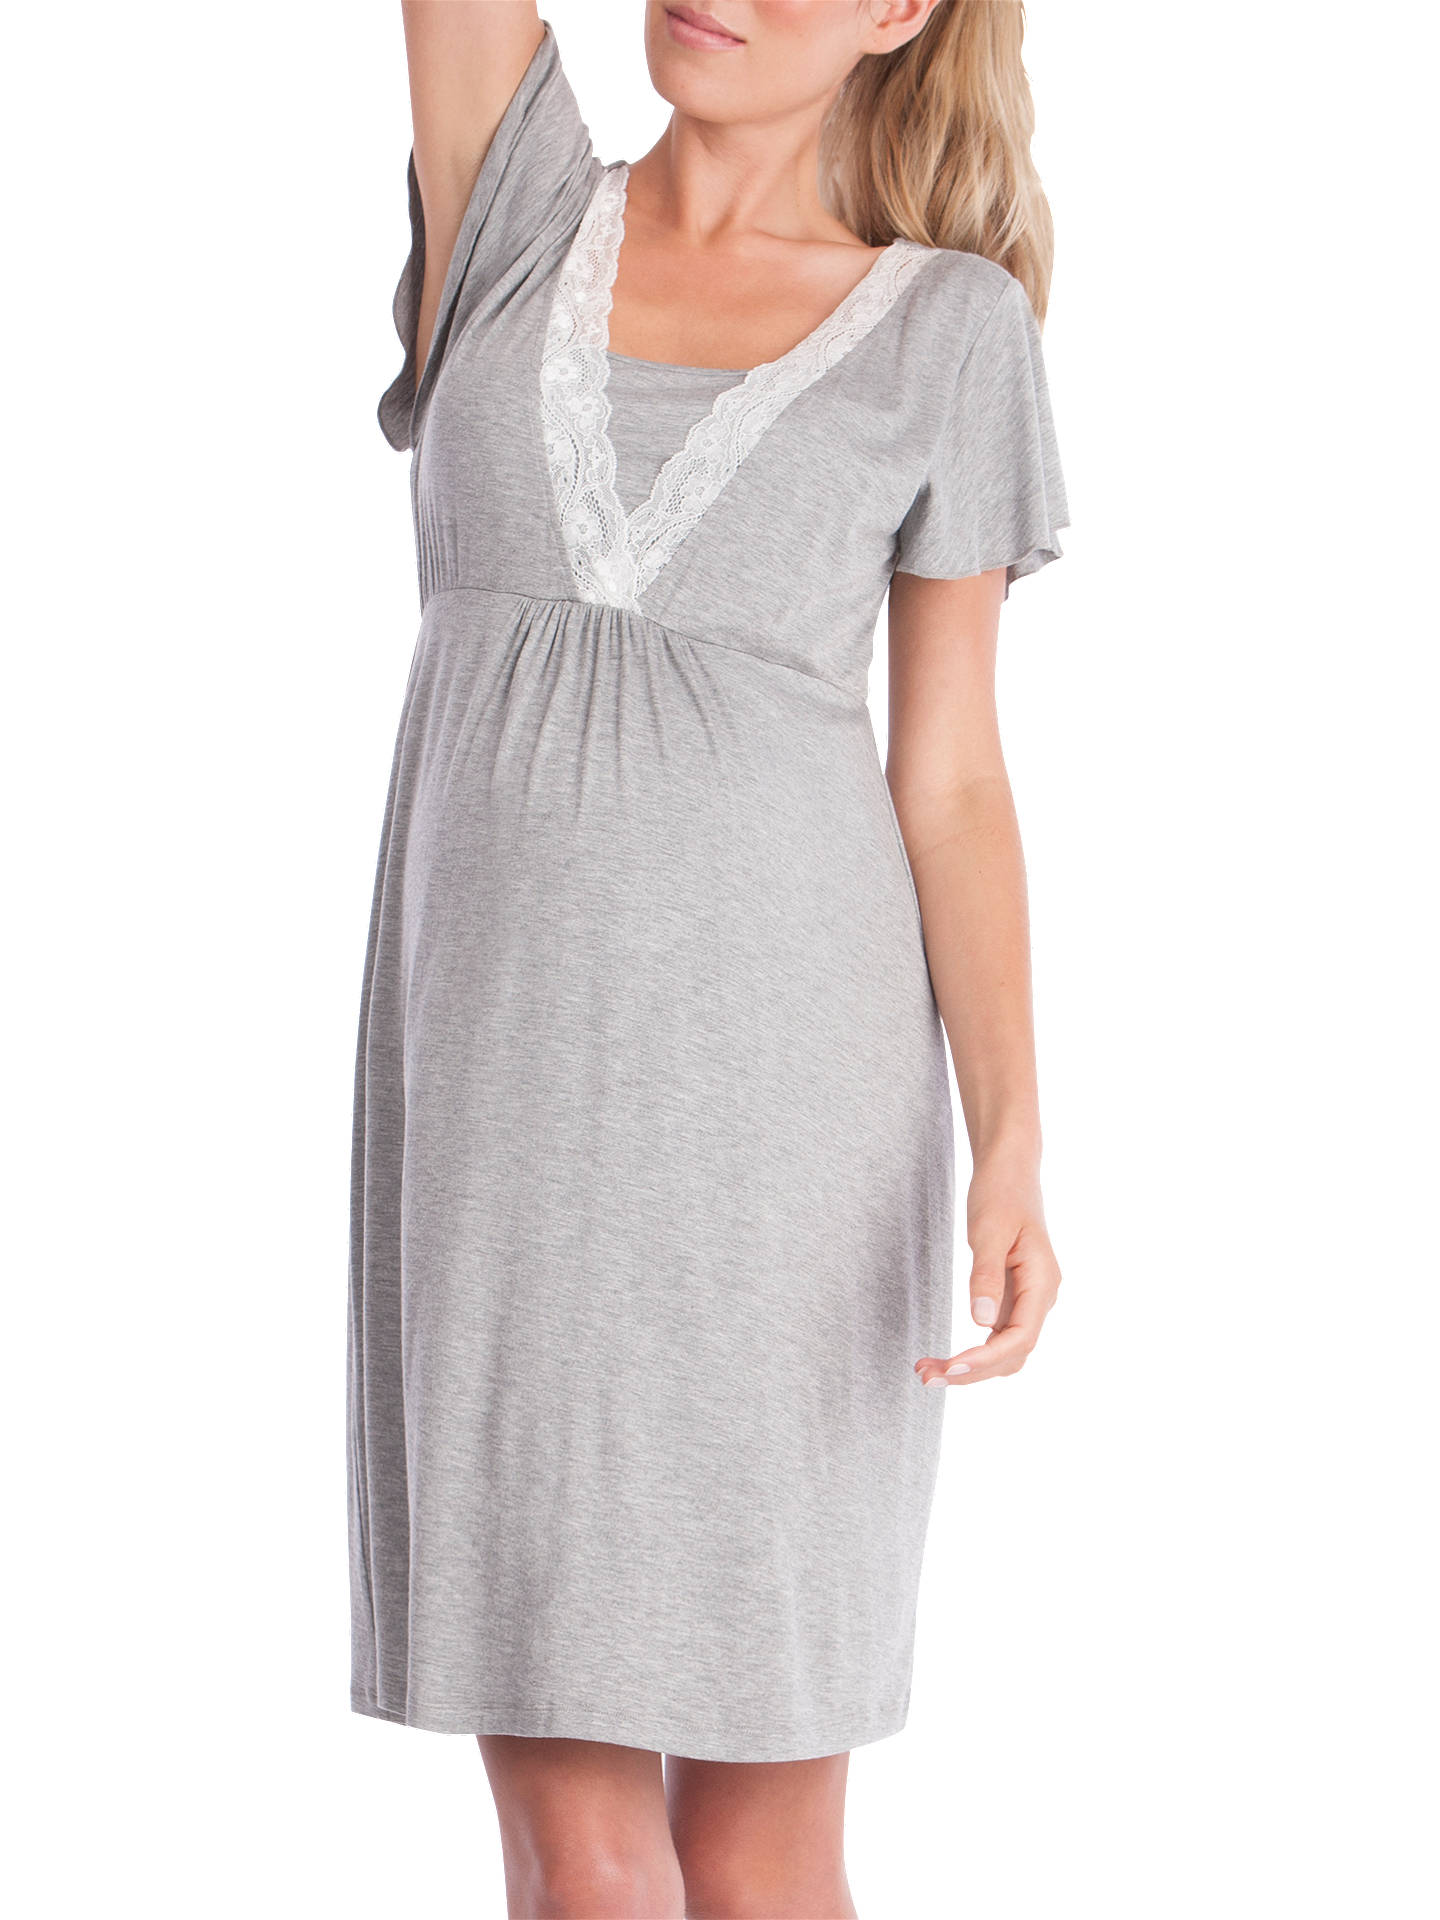 Buy Seraphine Maternity Meadow Nightdress, Grey, XS Online at johnlewis.com